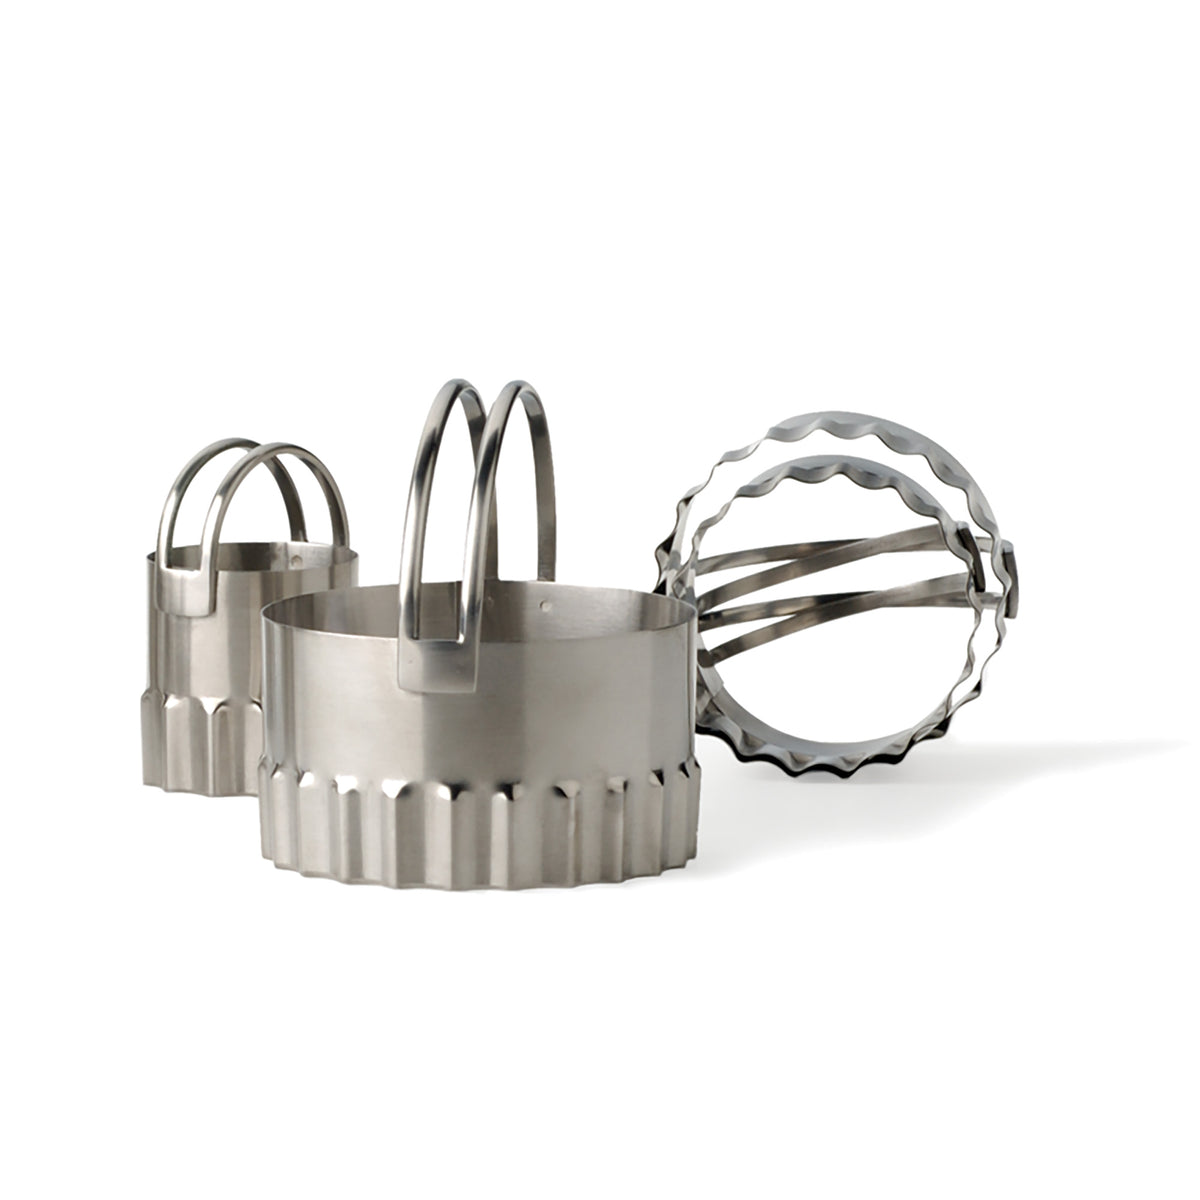 RSVP - Endurance® Round Ripple-Edge Biscuit Cutters